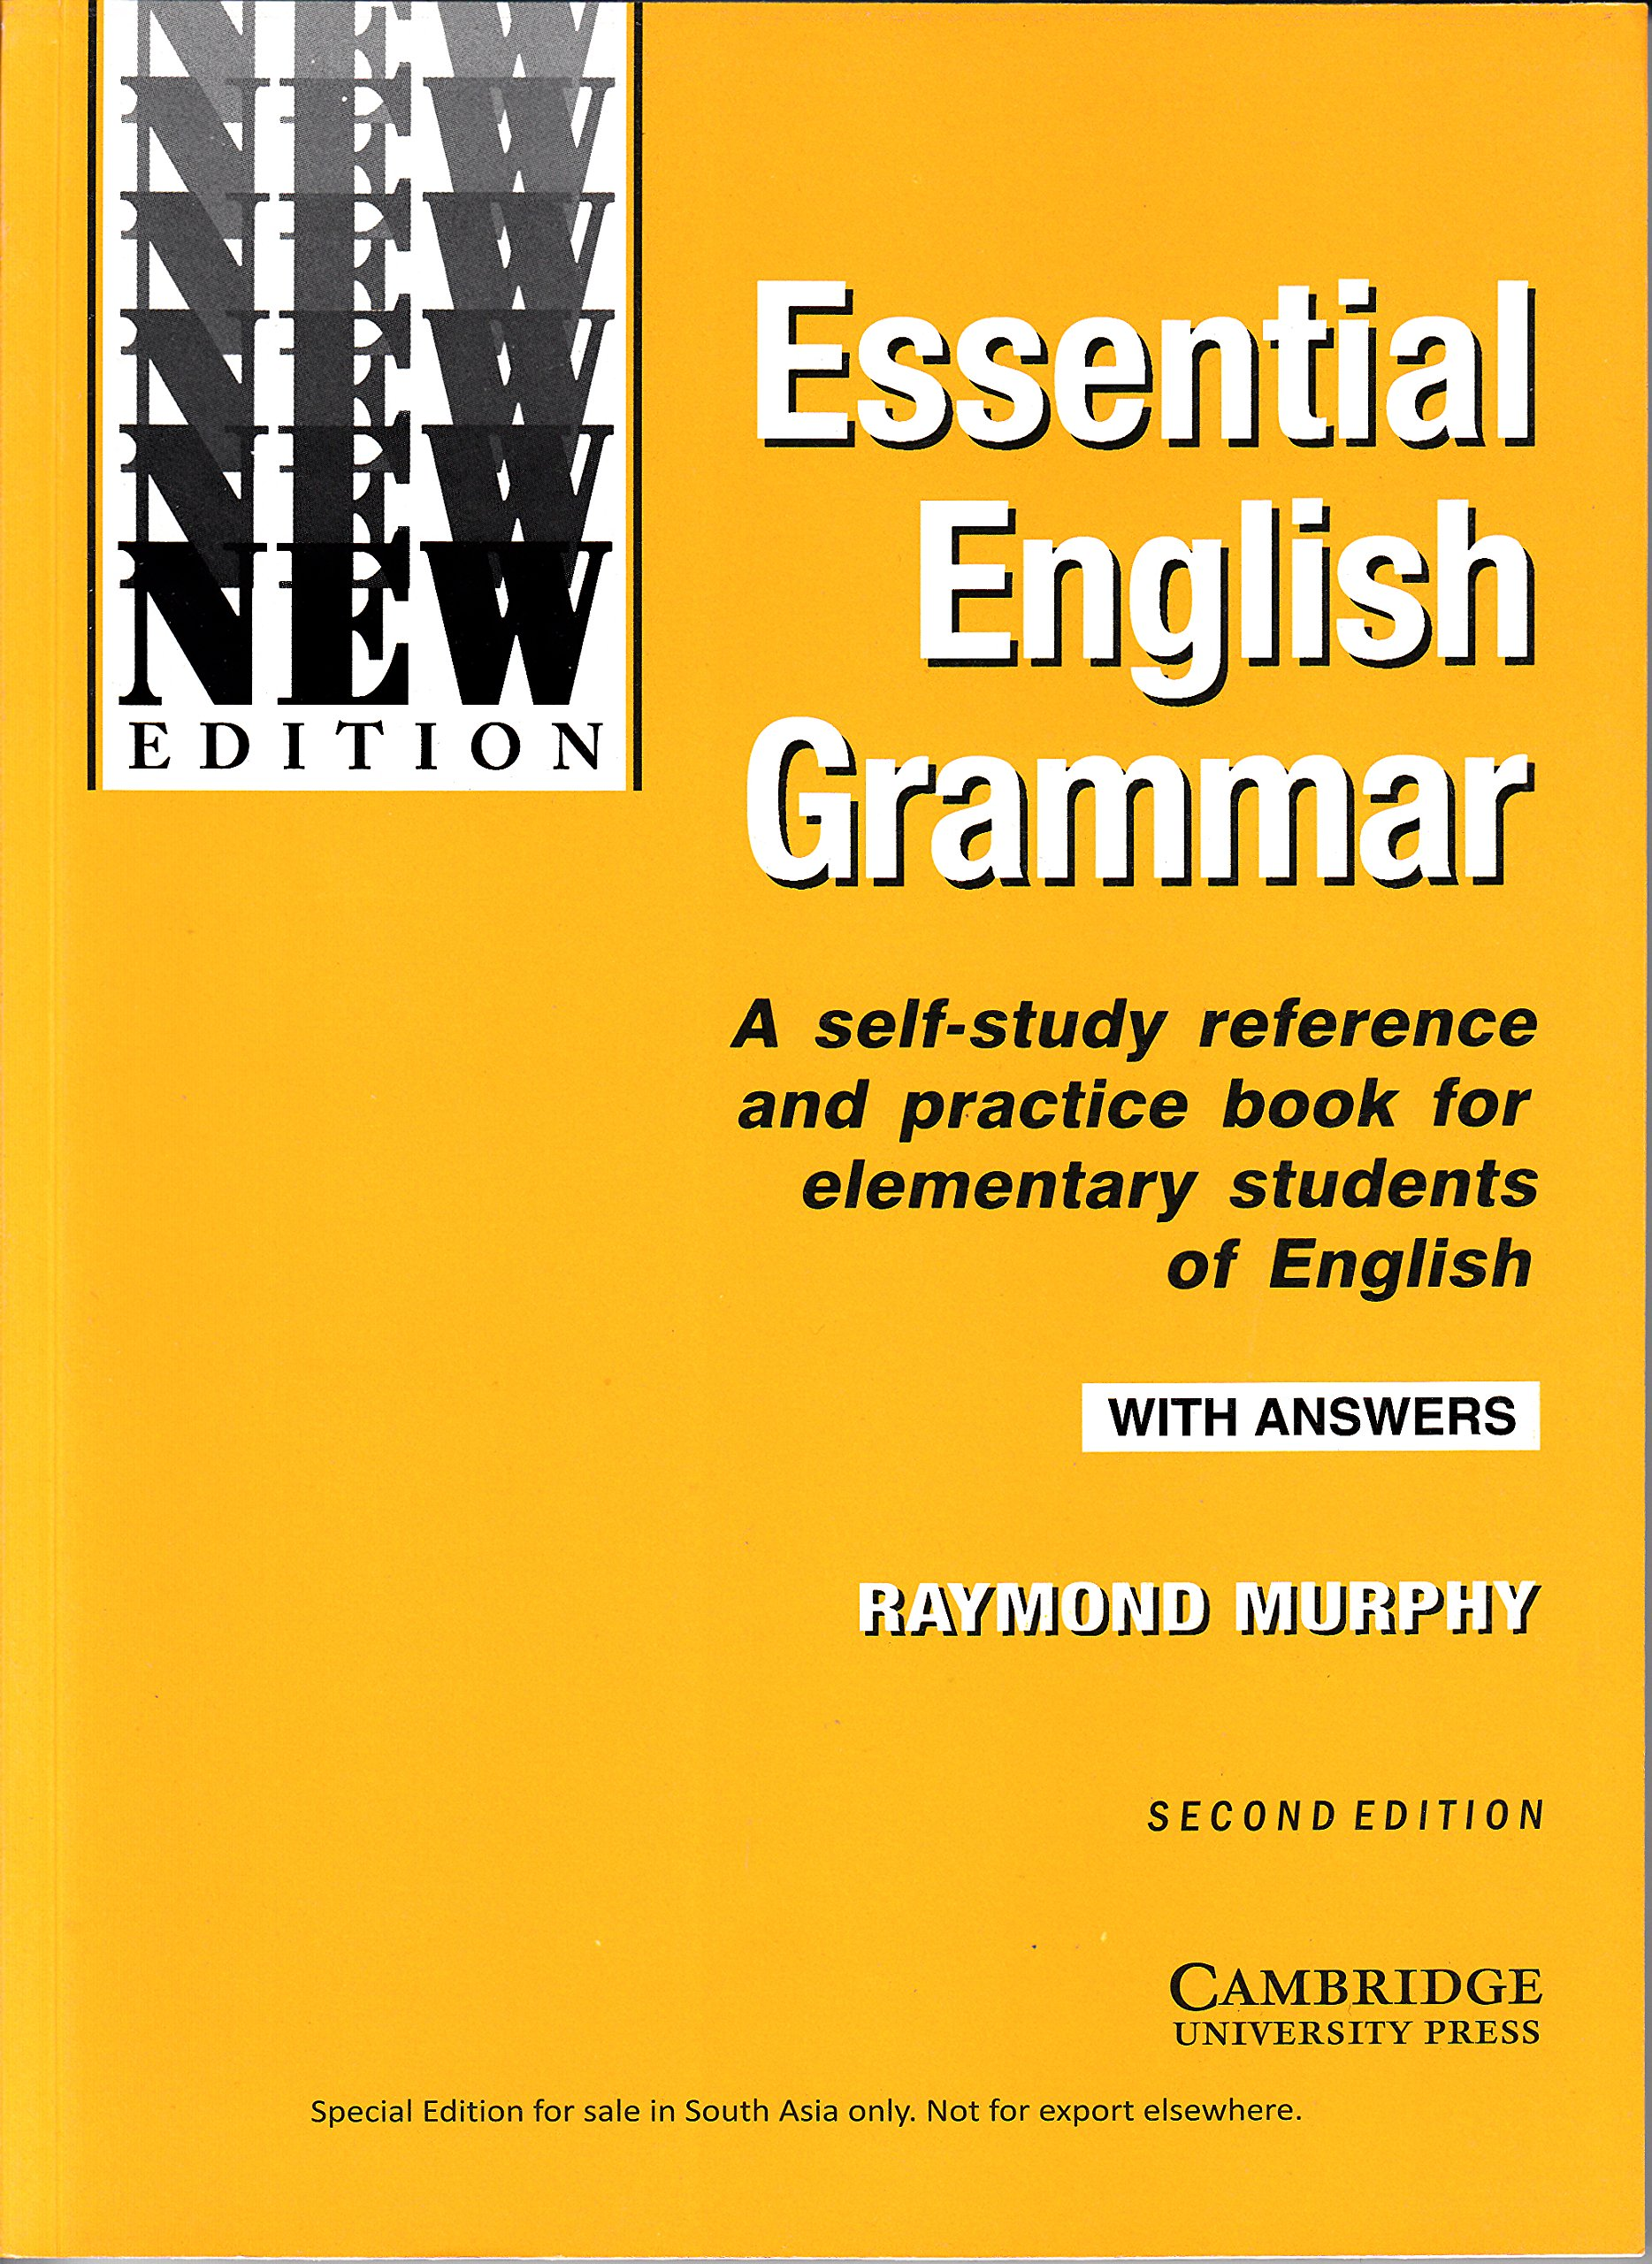 Buy essential english grammar with answers book online at low prices in india essential english grammar with answers reviews ratings amazon in